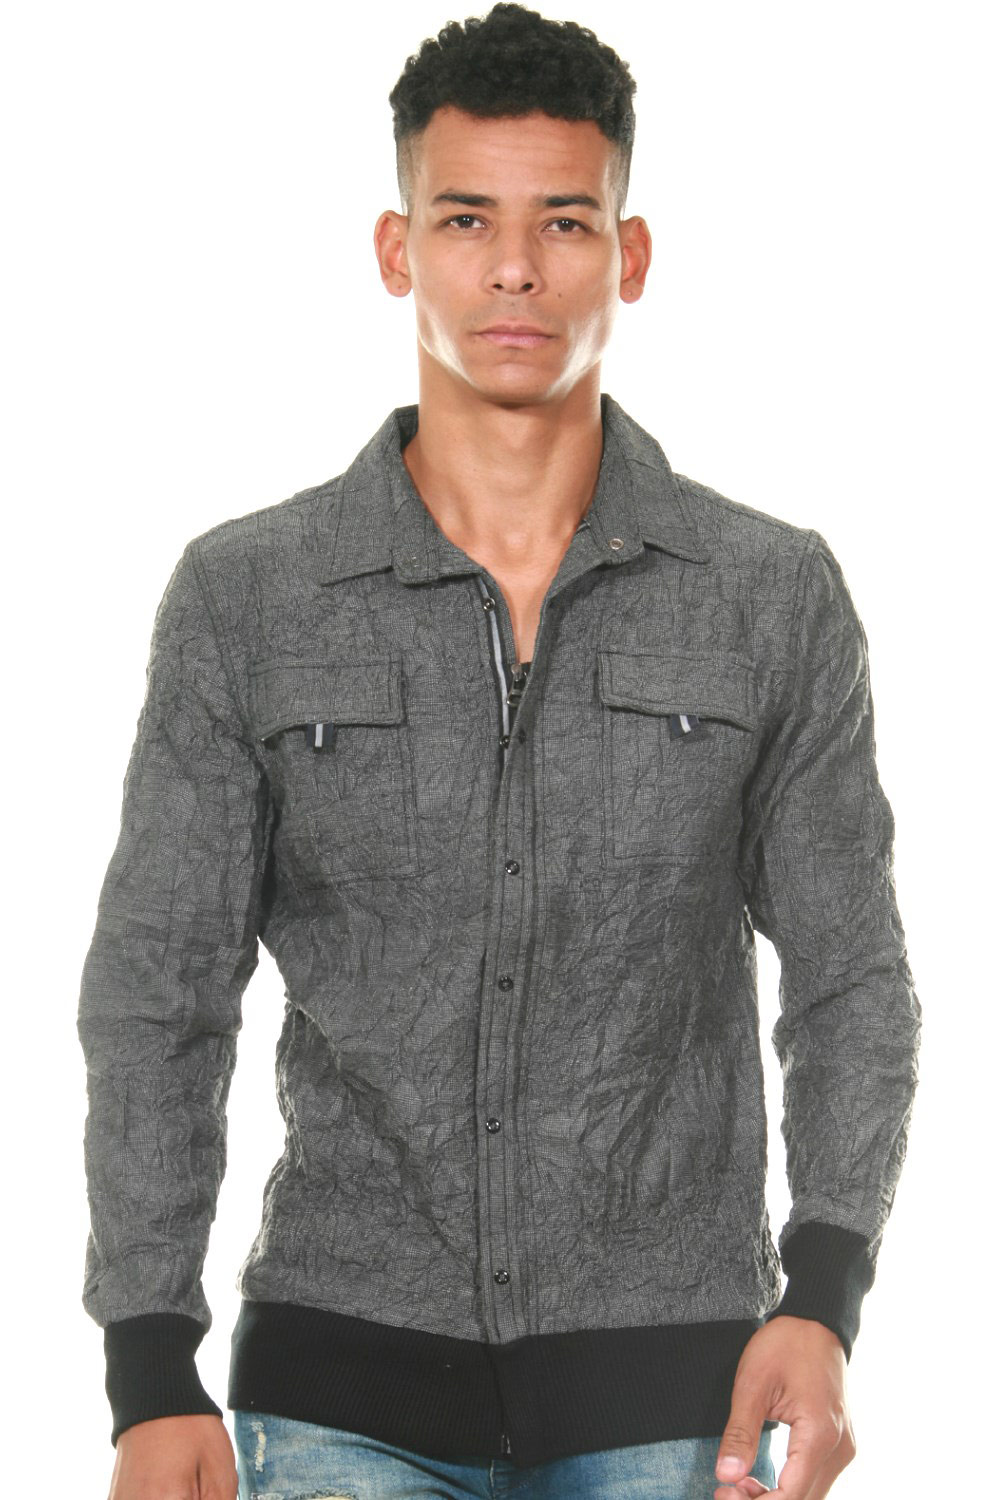 FIOCEO shirt jacket at oboy.com